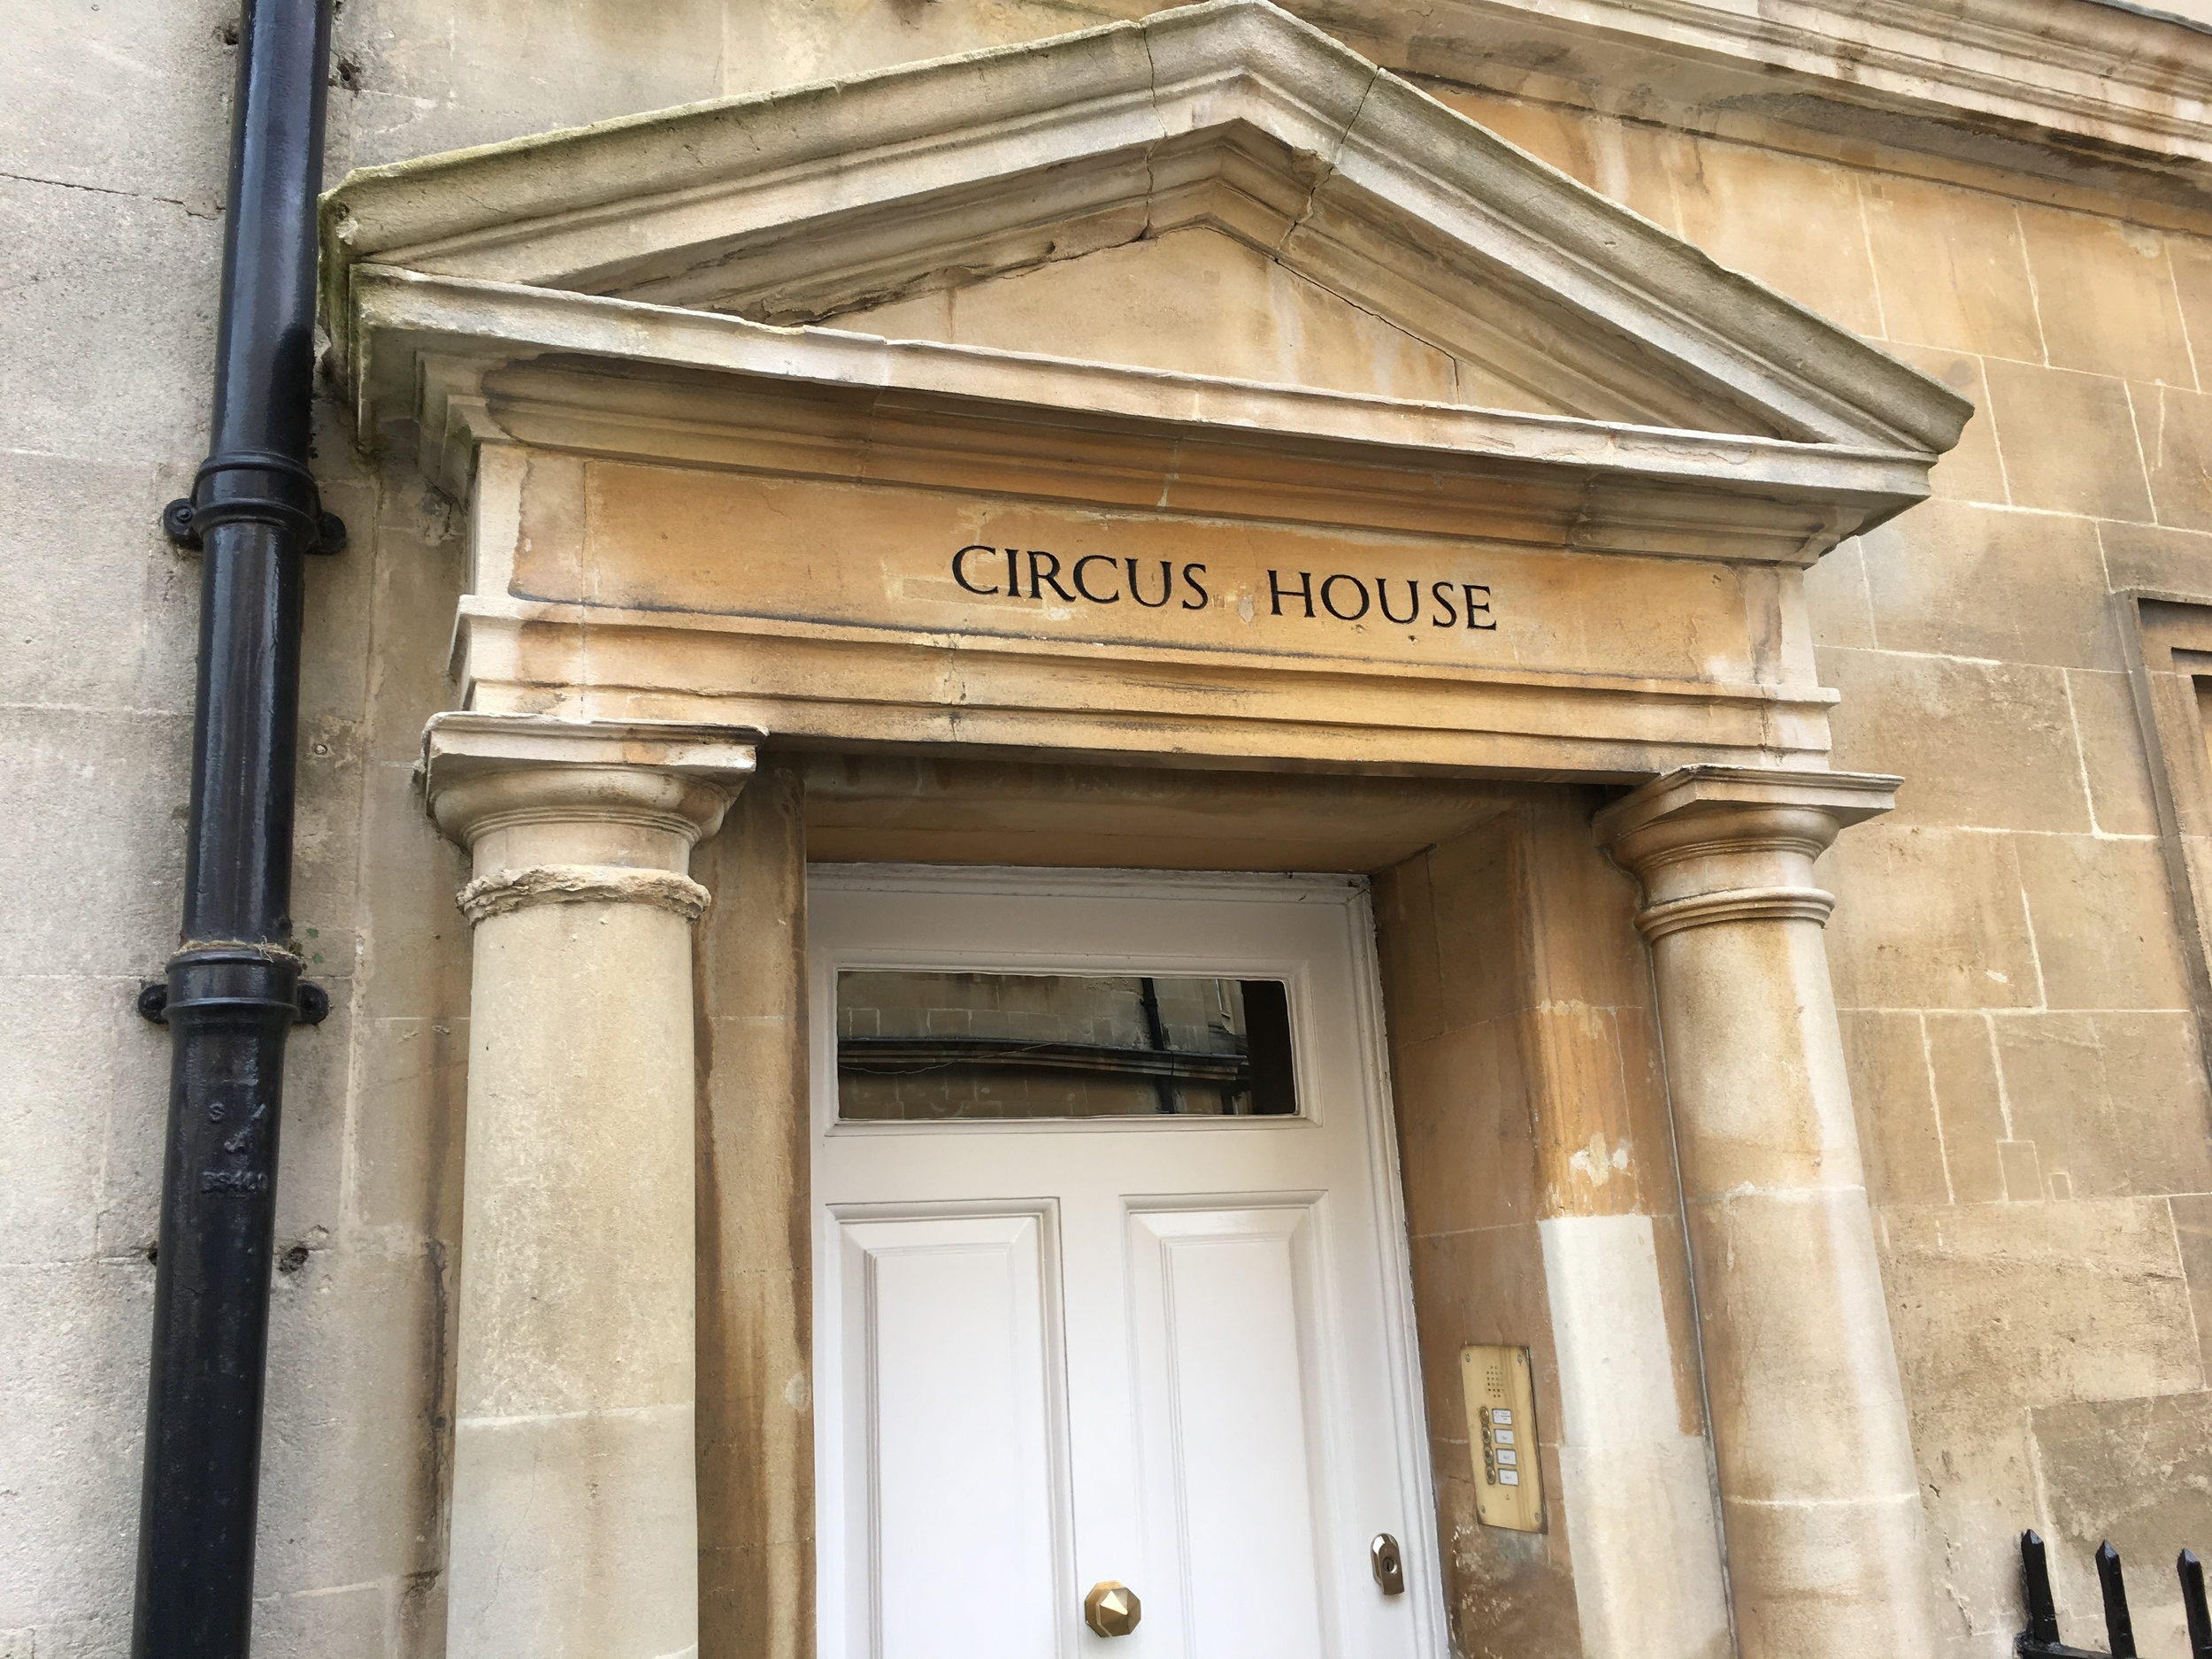 The home of a famous architect who designed many of the buildings in Bath.